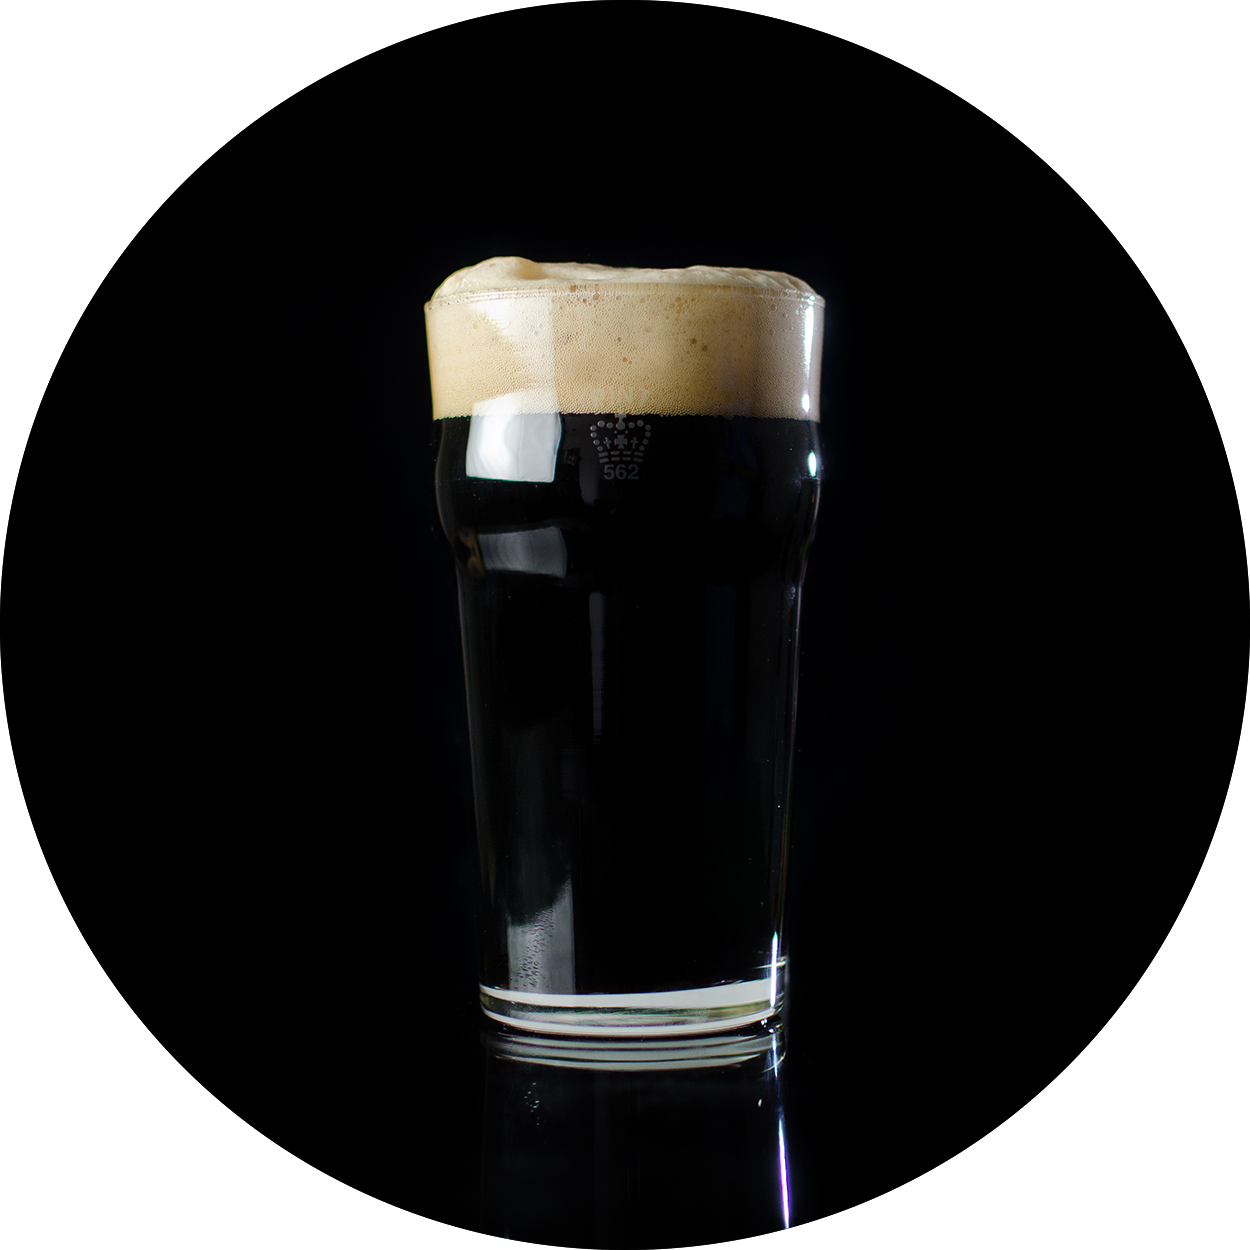 Black Lagers range from 4.2-6 percent ABV. They are smooth, moderately ...